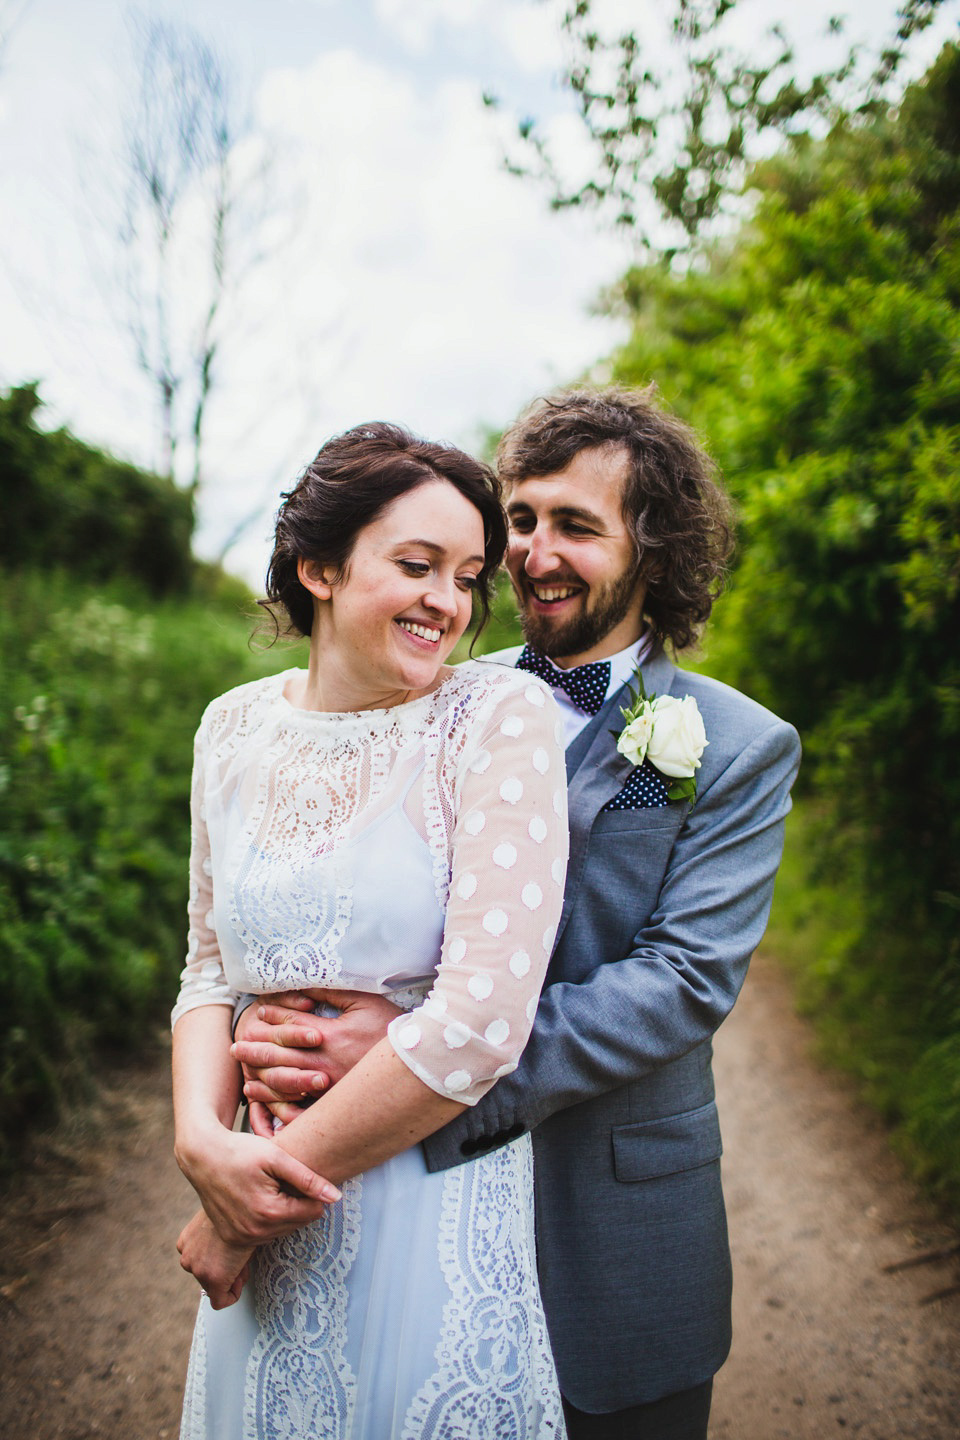 A Pale Blue Wedding Dress for a Pretty Spring Time Barn Wedding